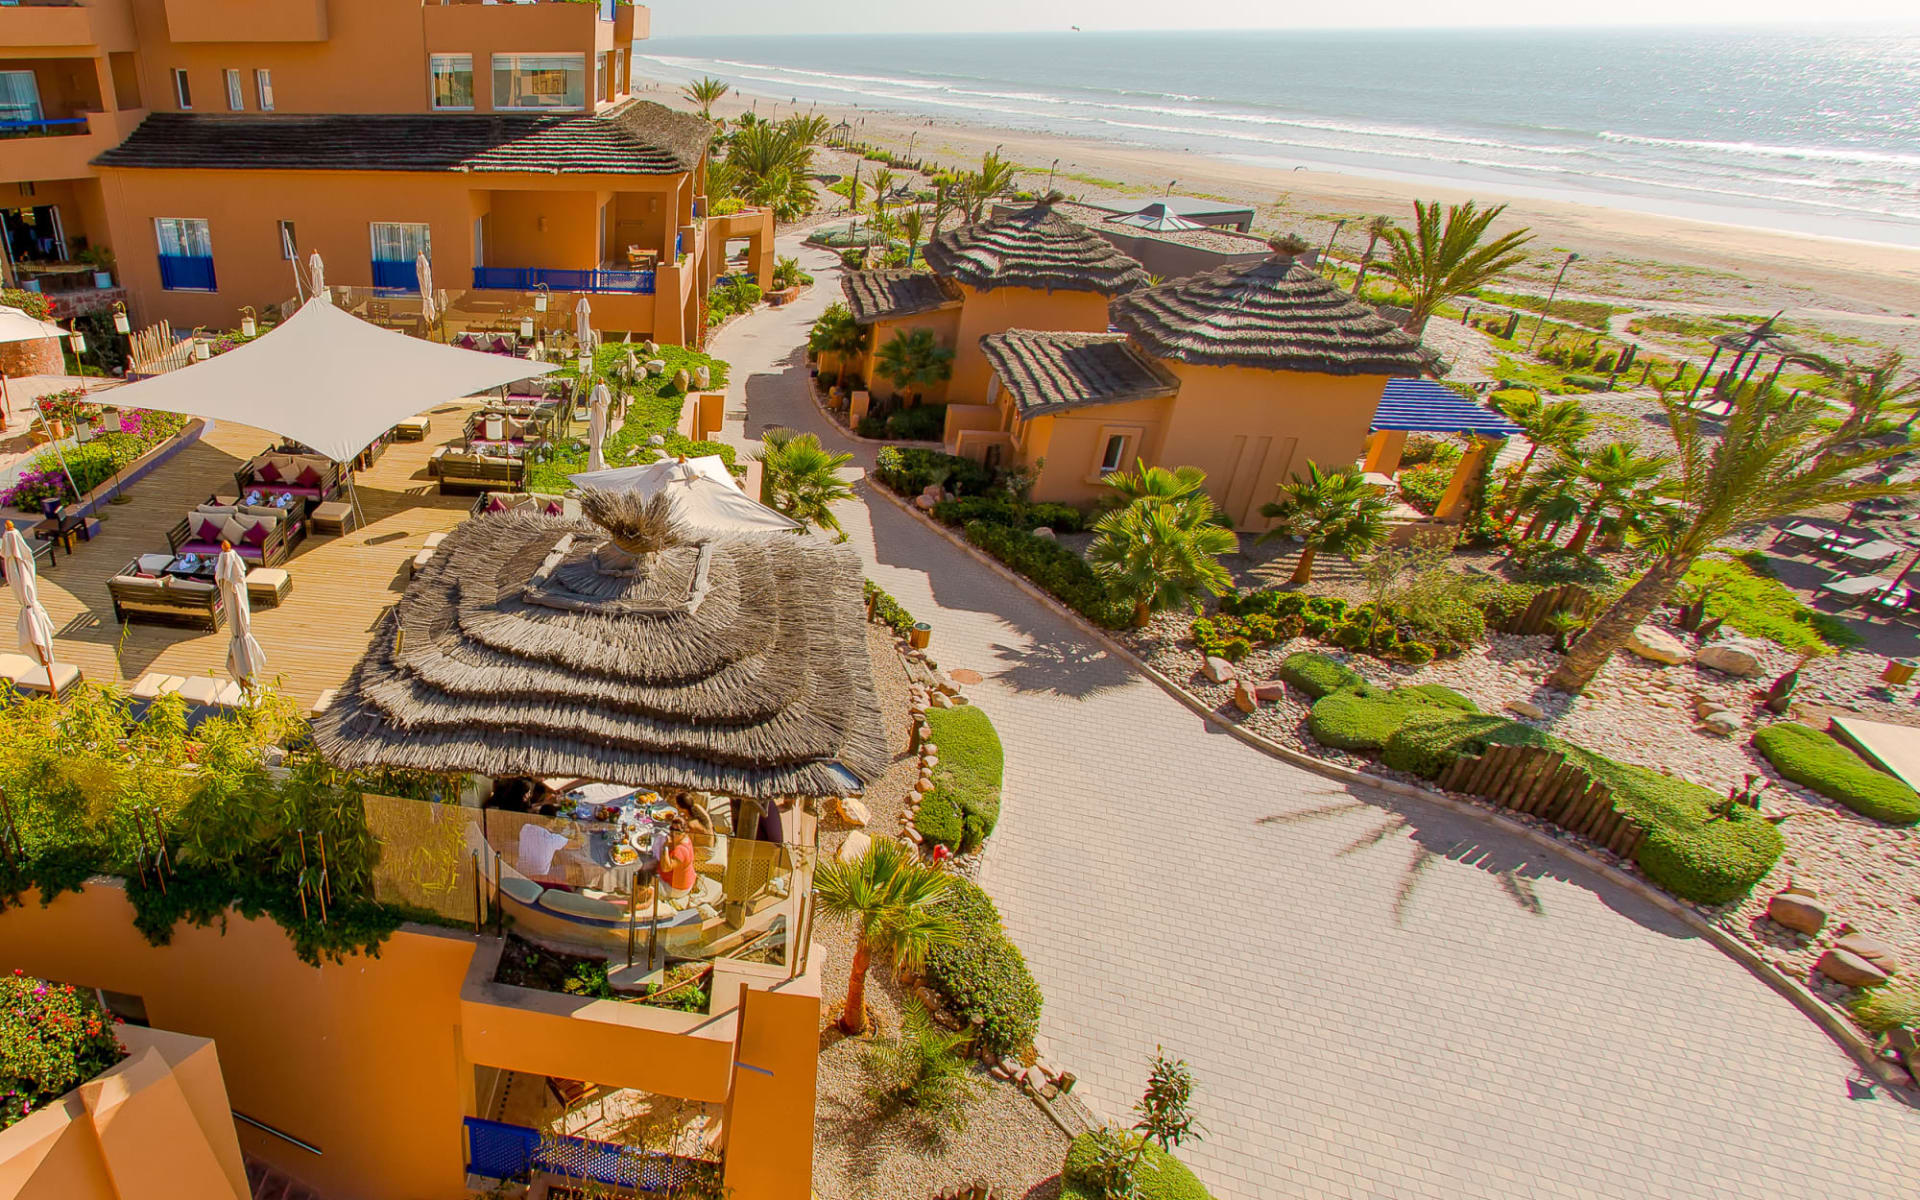 Paradis Plage Resort in Taghazout Bay: